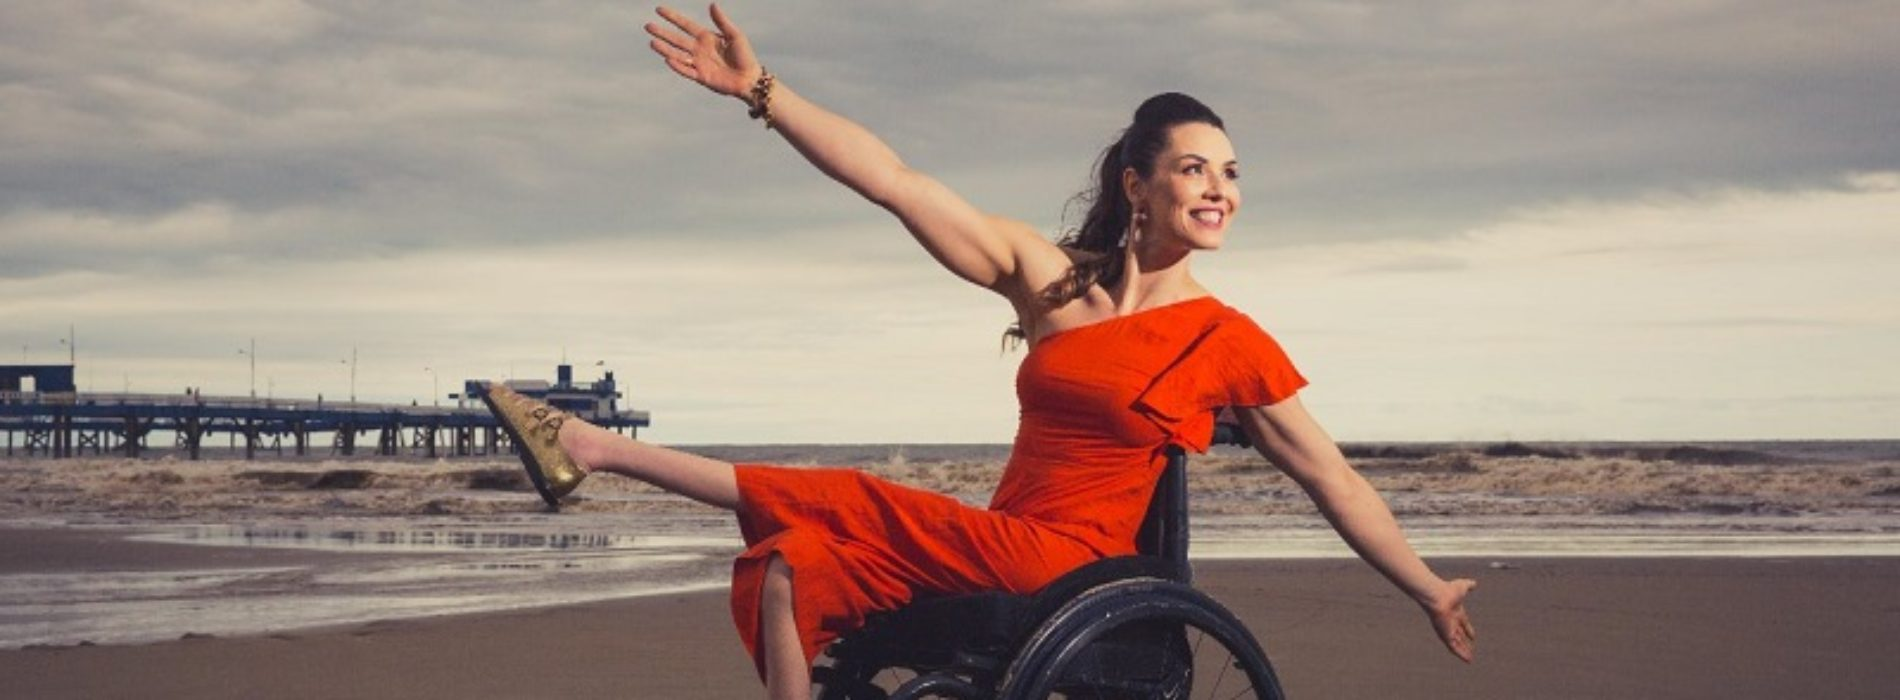 Disabled model Samanta Bullock launches adaptive clothing line